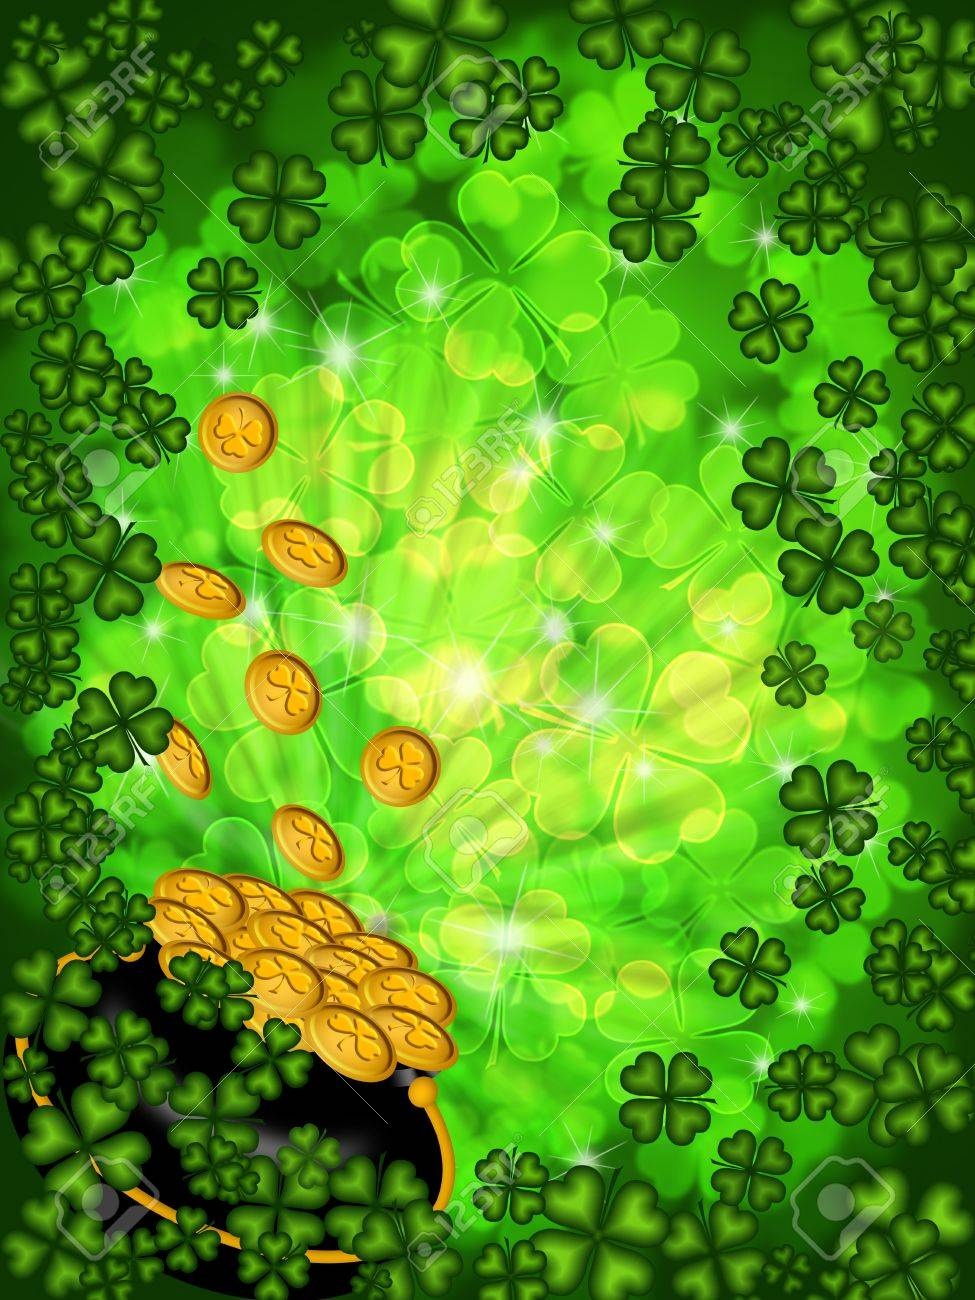 st patricks day pot of gold on four leaf clover shamrock with